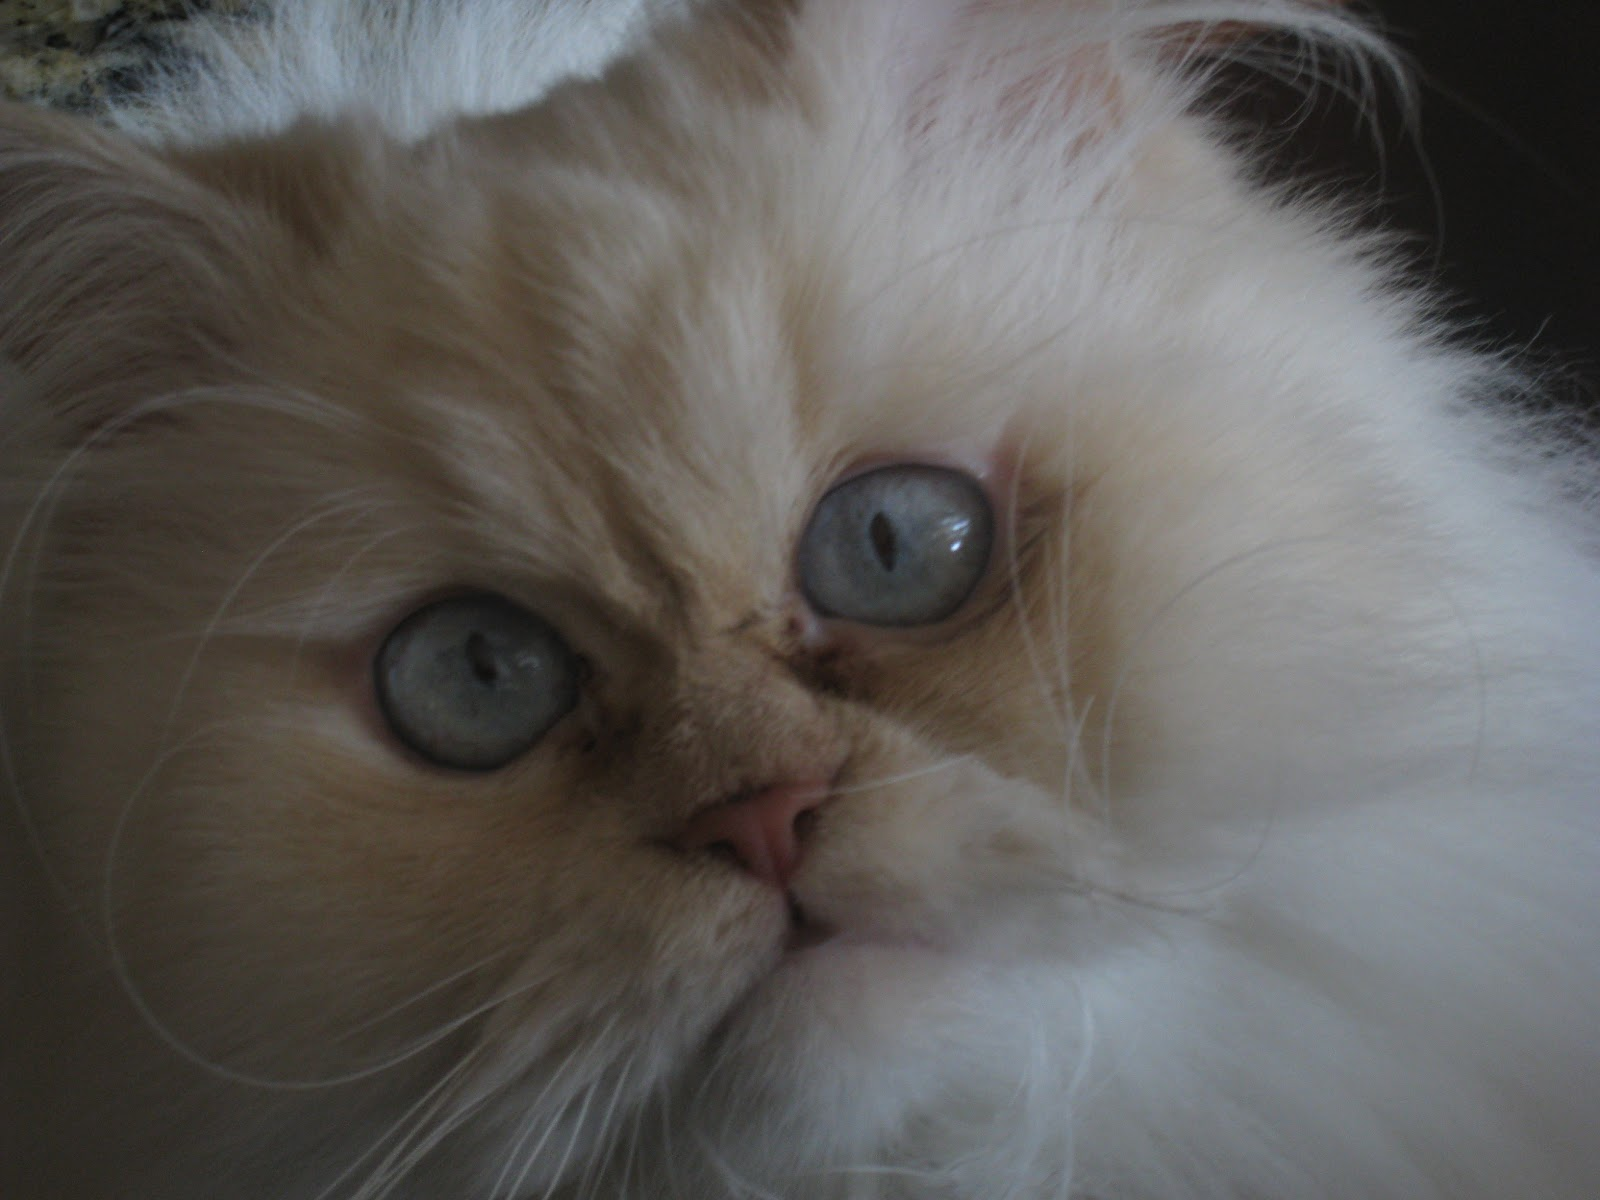 Cats Eyes Change Color Eyes Could Change Color